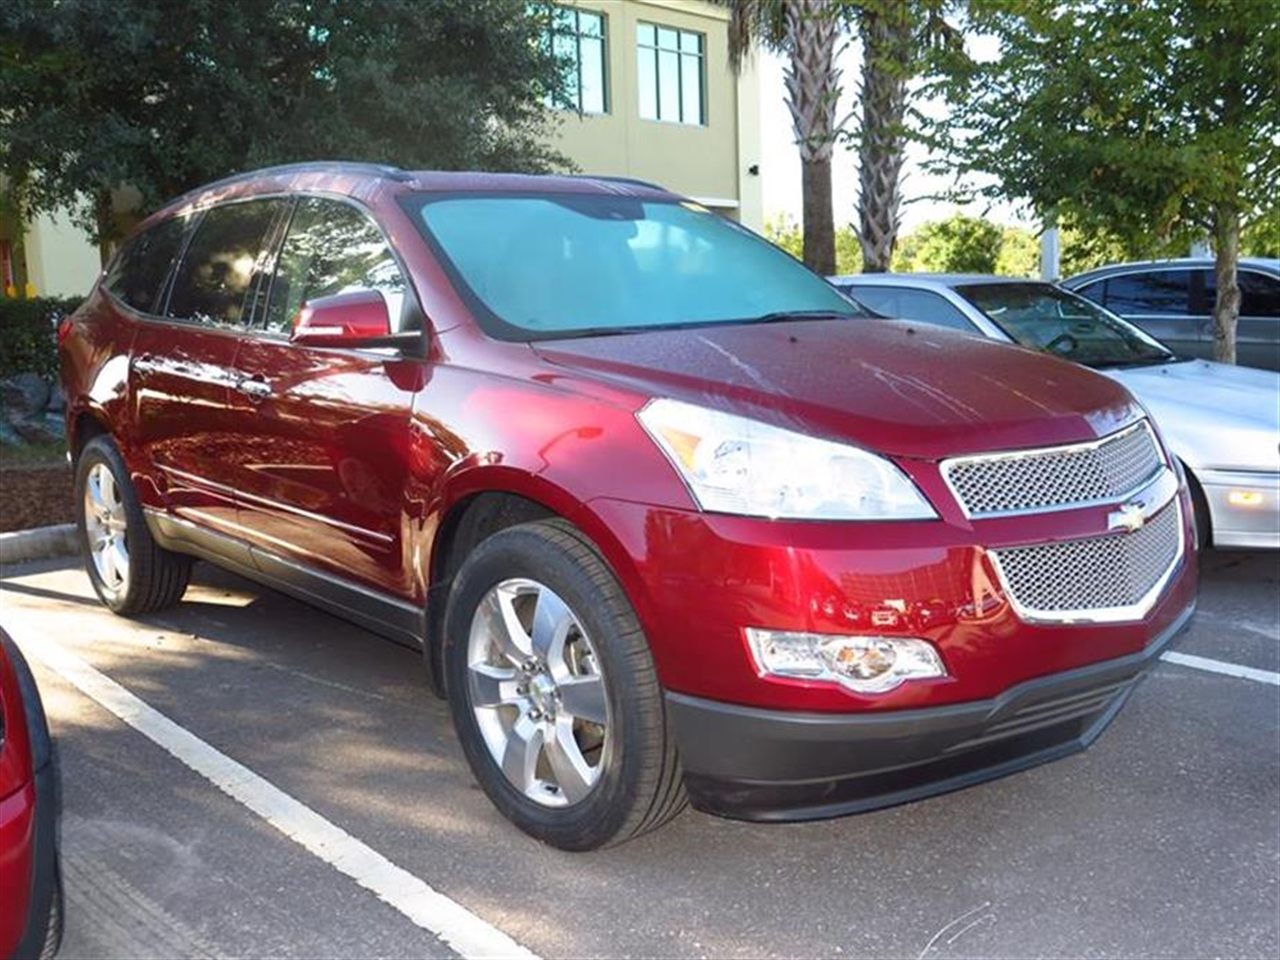 2011 CHEVROLET TRAVERSE FWD 4dr LTZ 45133 miles Air conditioning rear manual tri-zone automatic